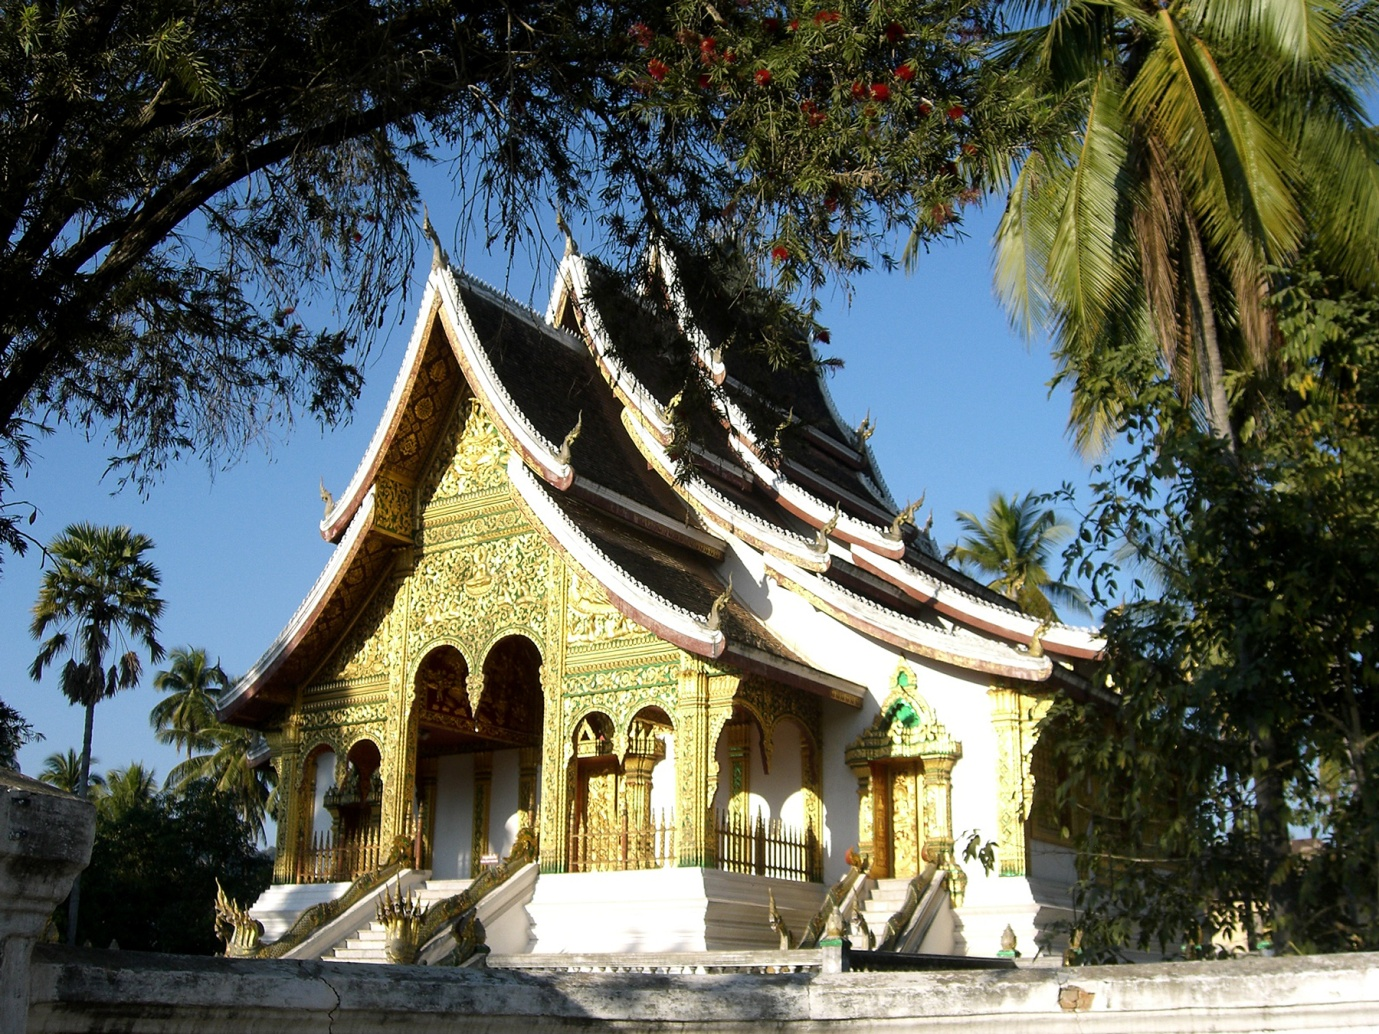 The beauty of temple in Luang Prabang